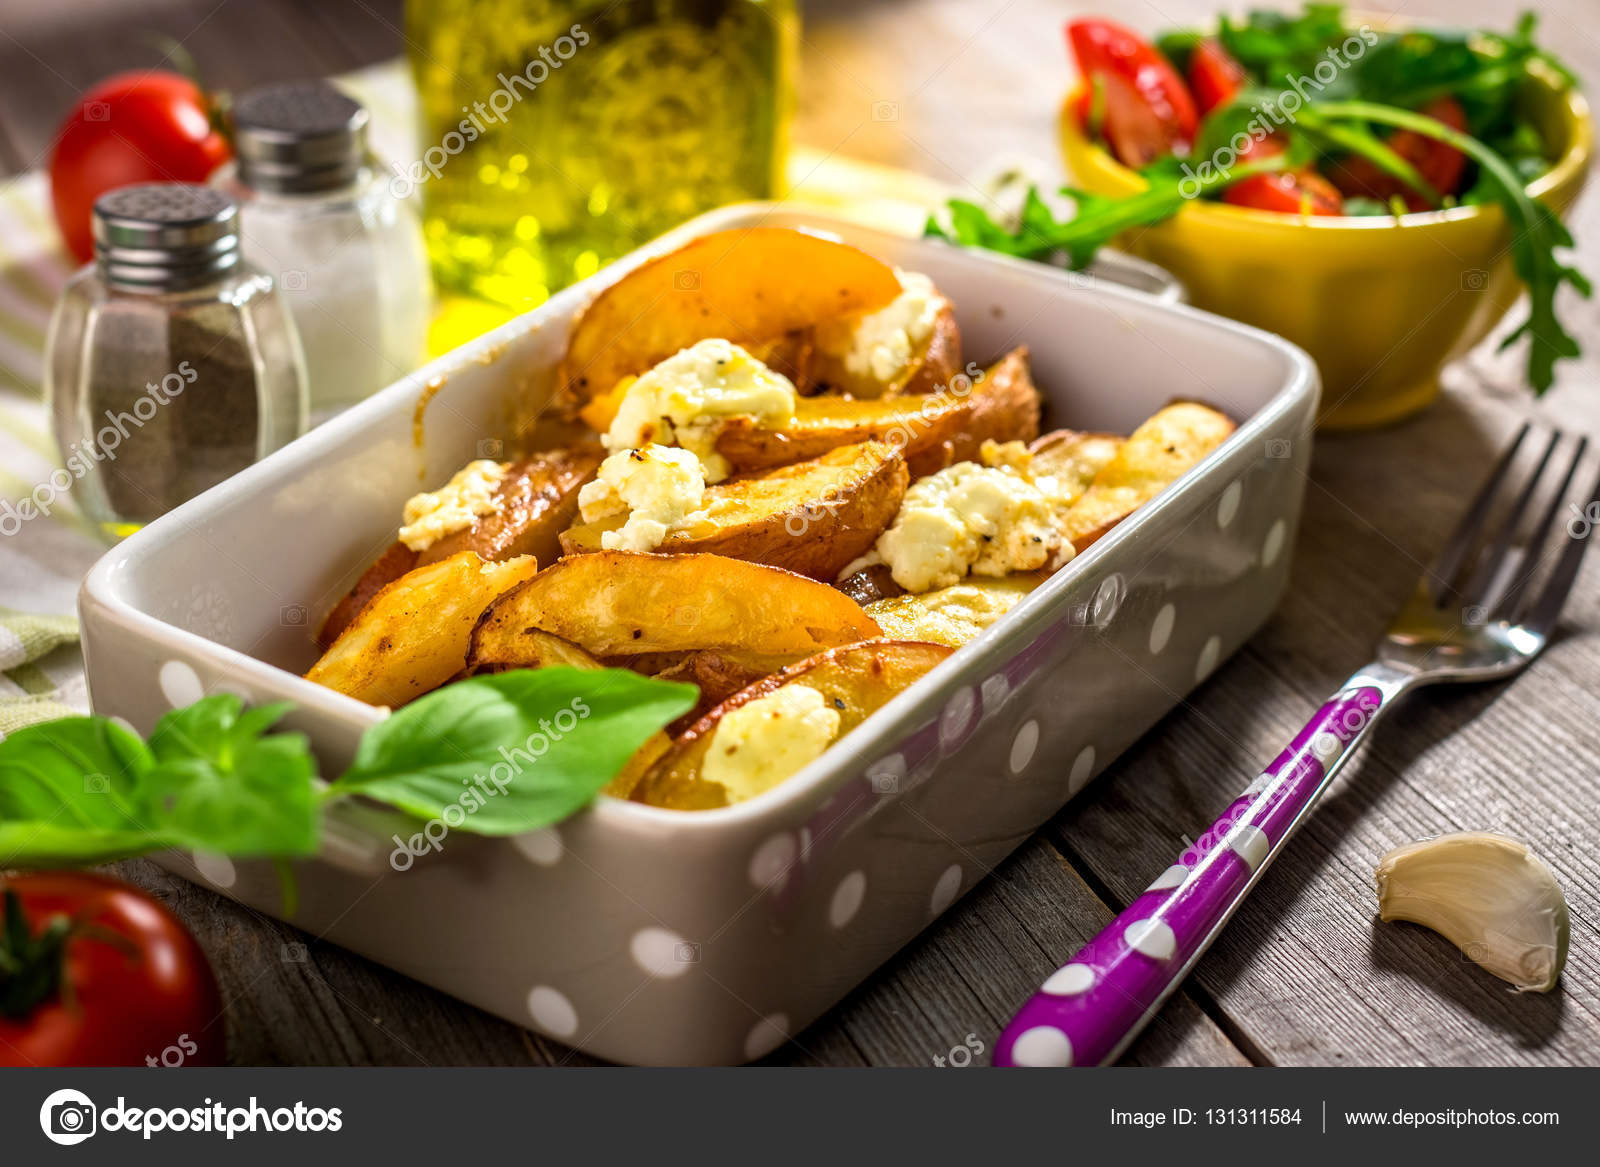 Magnificent Baked Potatoes With Cottage Cheese Stock Photo Interior Design Ideas Gentotryabchikinfo